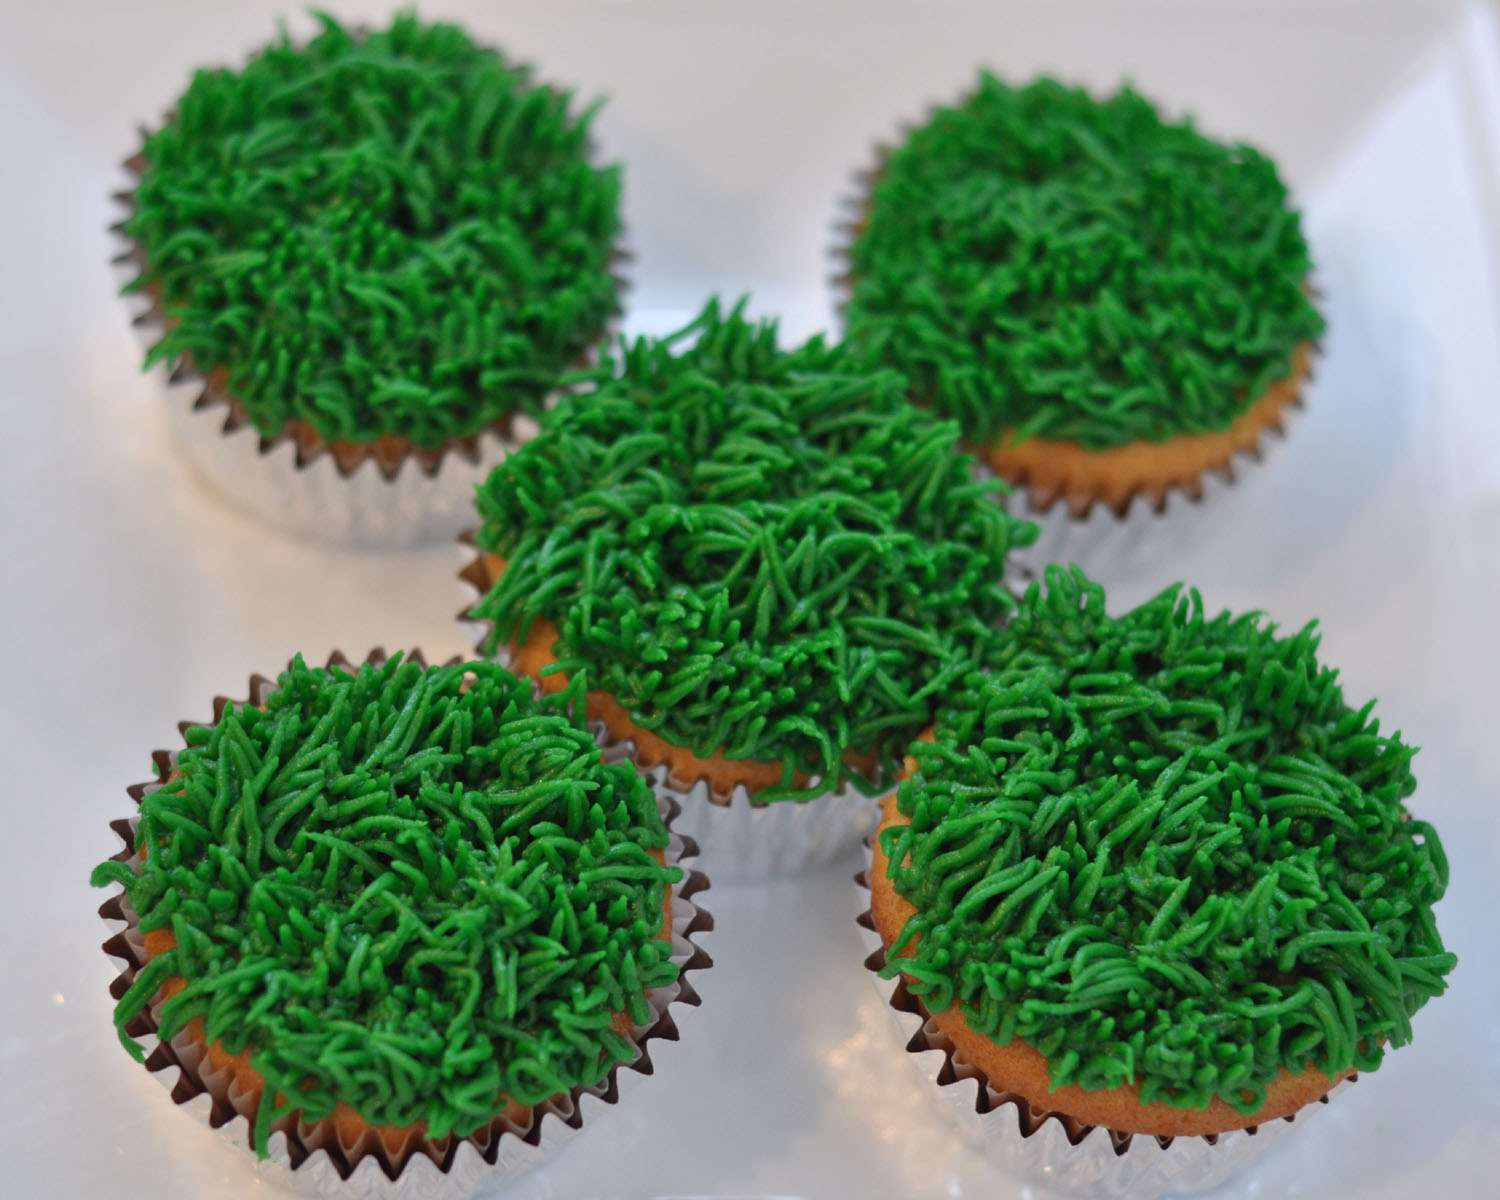 Cake Decorating Making Grass : Beki Cook s Cake Blog: Grass, Bees & Ladybugs Cupcakes